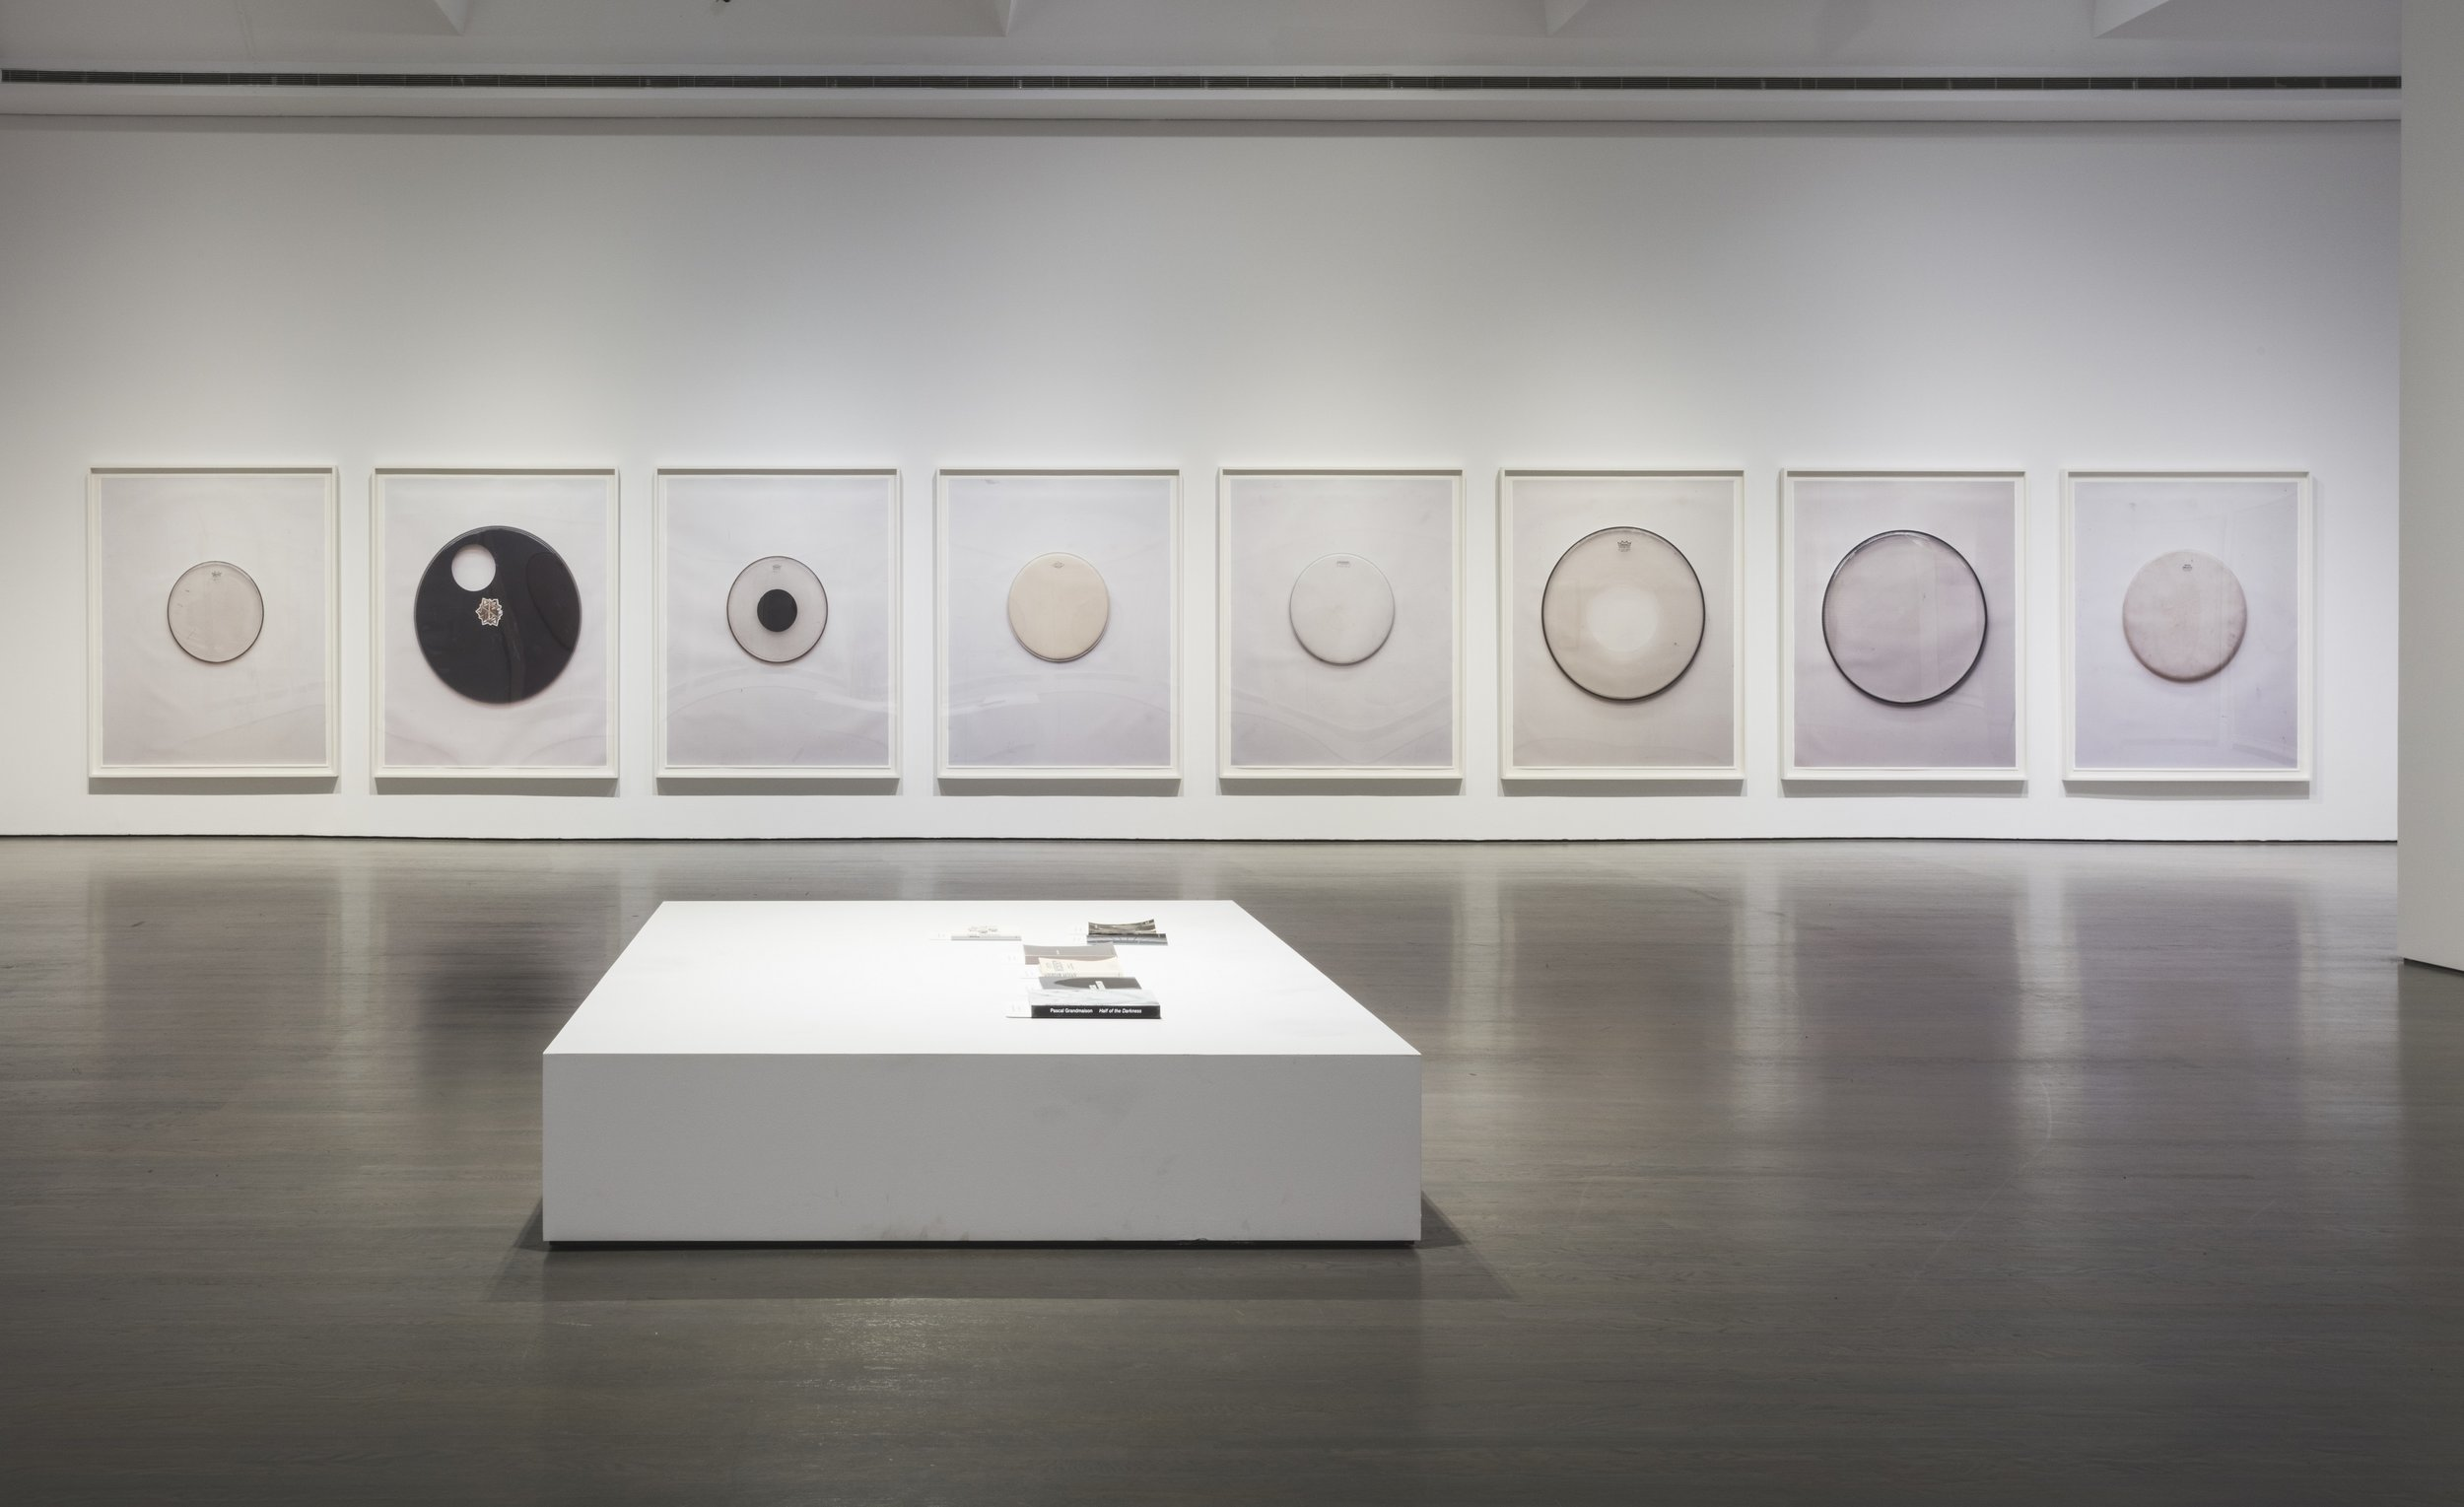 Exhibition view of  Manner from Pascal Grandmaison presented at the Musée d'art contemporain de Montréal from December 15, 2017 to March 25, 2018 in  Picture for an Exhibition: The gaze listens . Photo: Richard-Max Tremblay